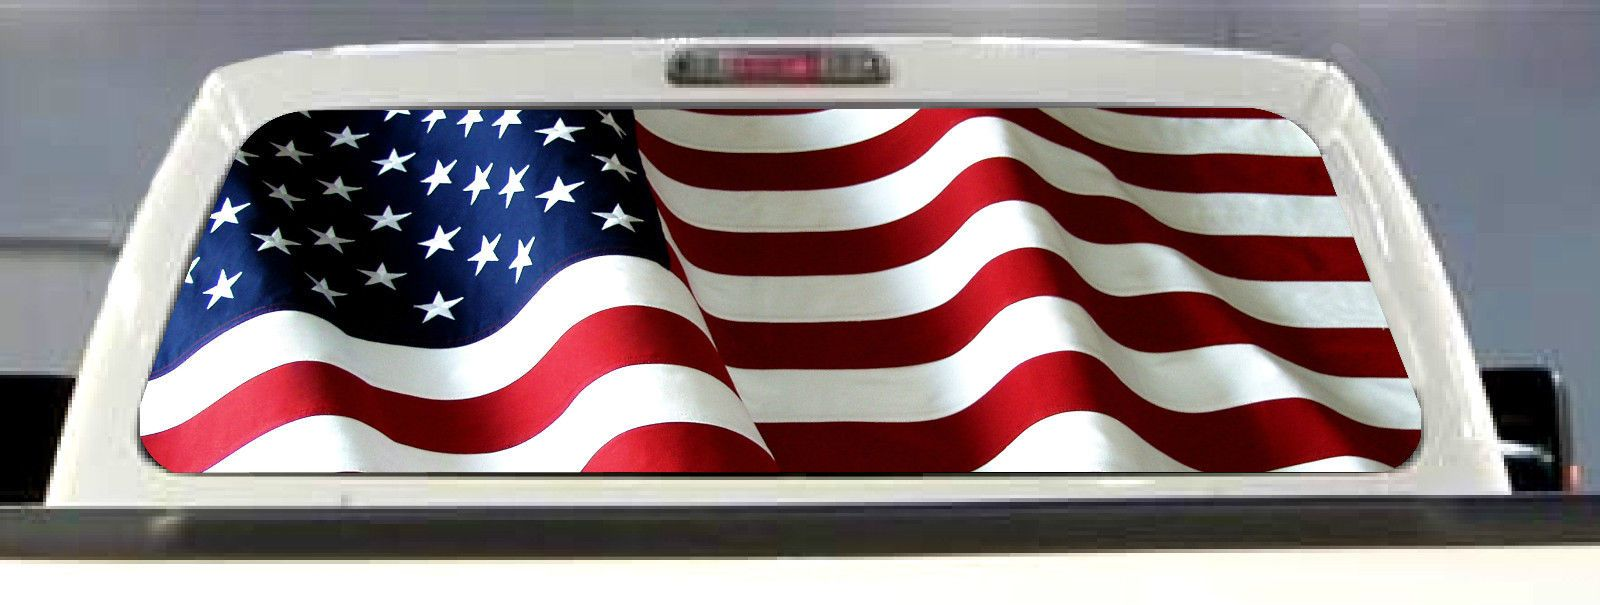 American flag pick up truck back window graphic decal perforated vinyl tint ebay